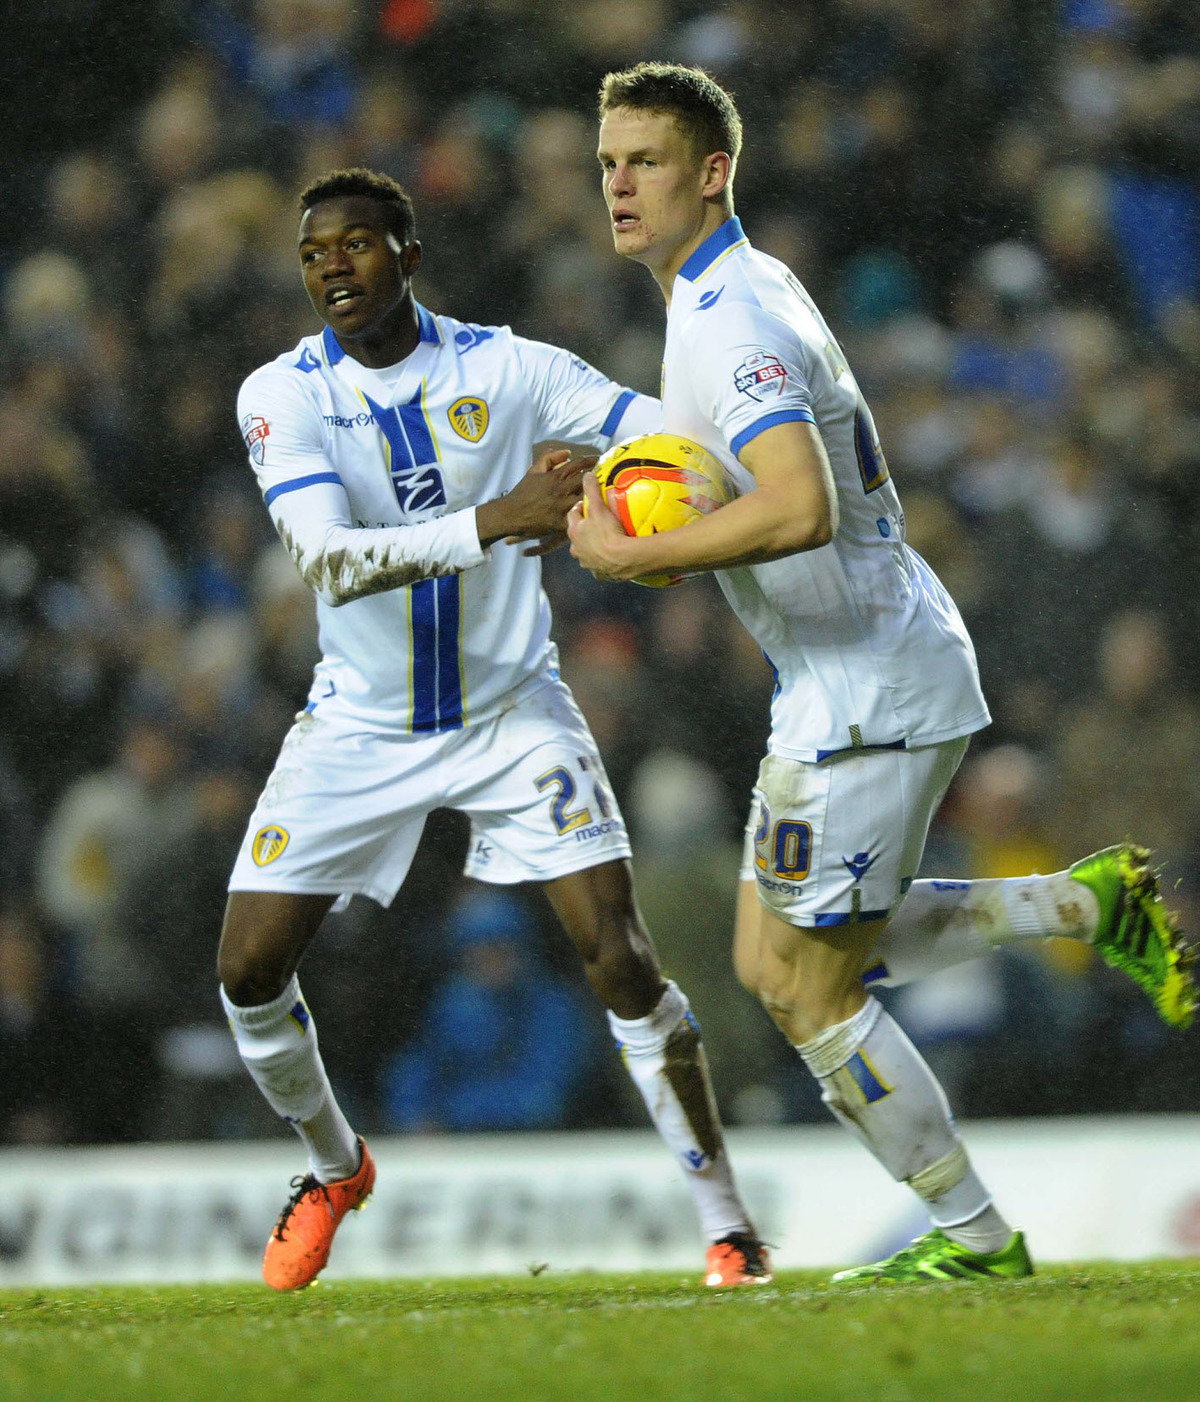 FOOTBALL: Ex-Quarry youngster making his mark at Leeds